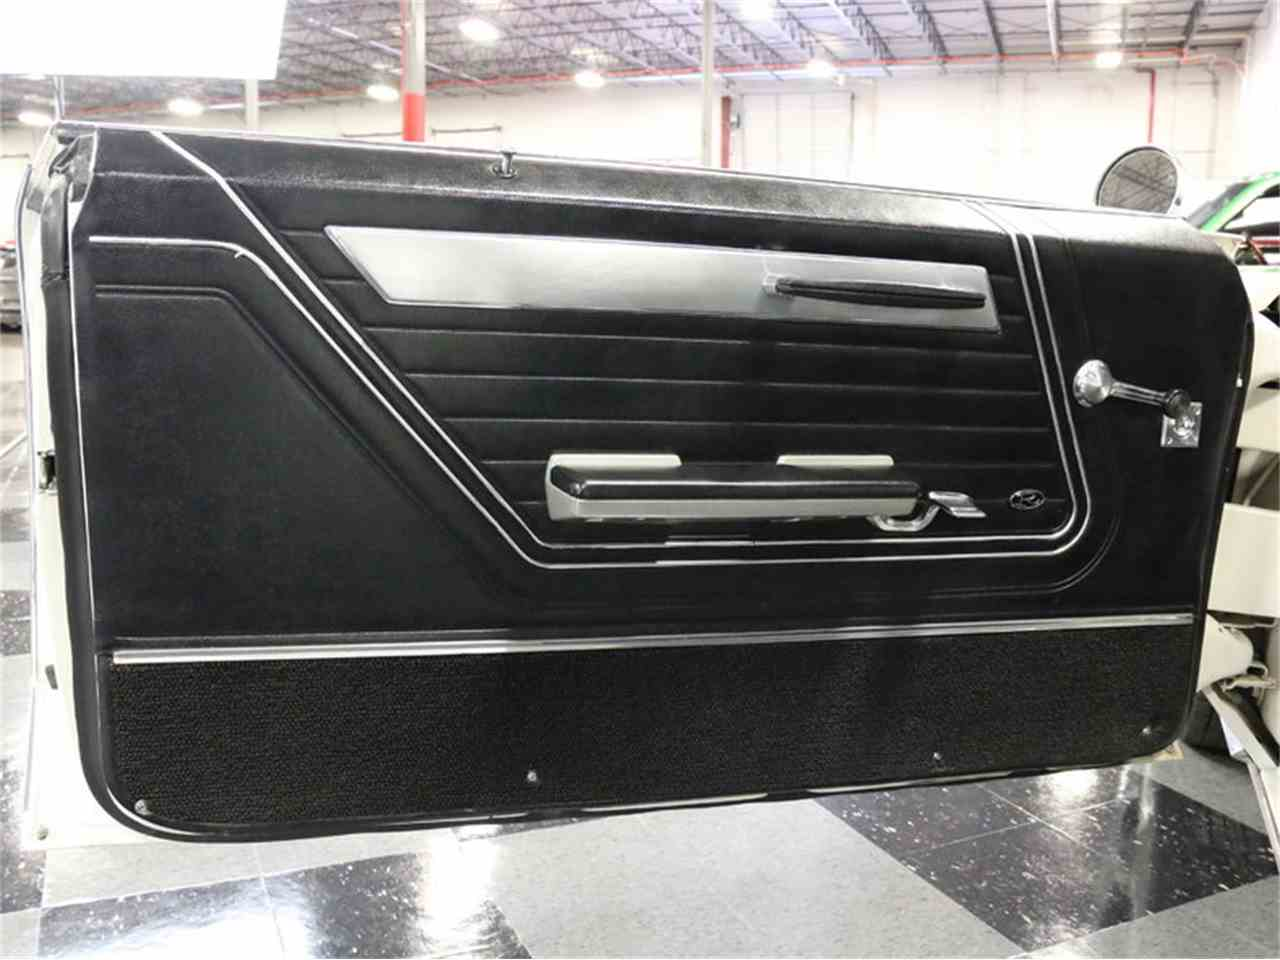 Large Picture of 1967 Buick Riviera - $20,995.00 Offered by Streetside Classics - Dallas / Fort Worth - M5N7